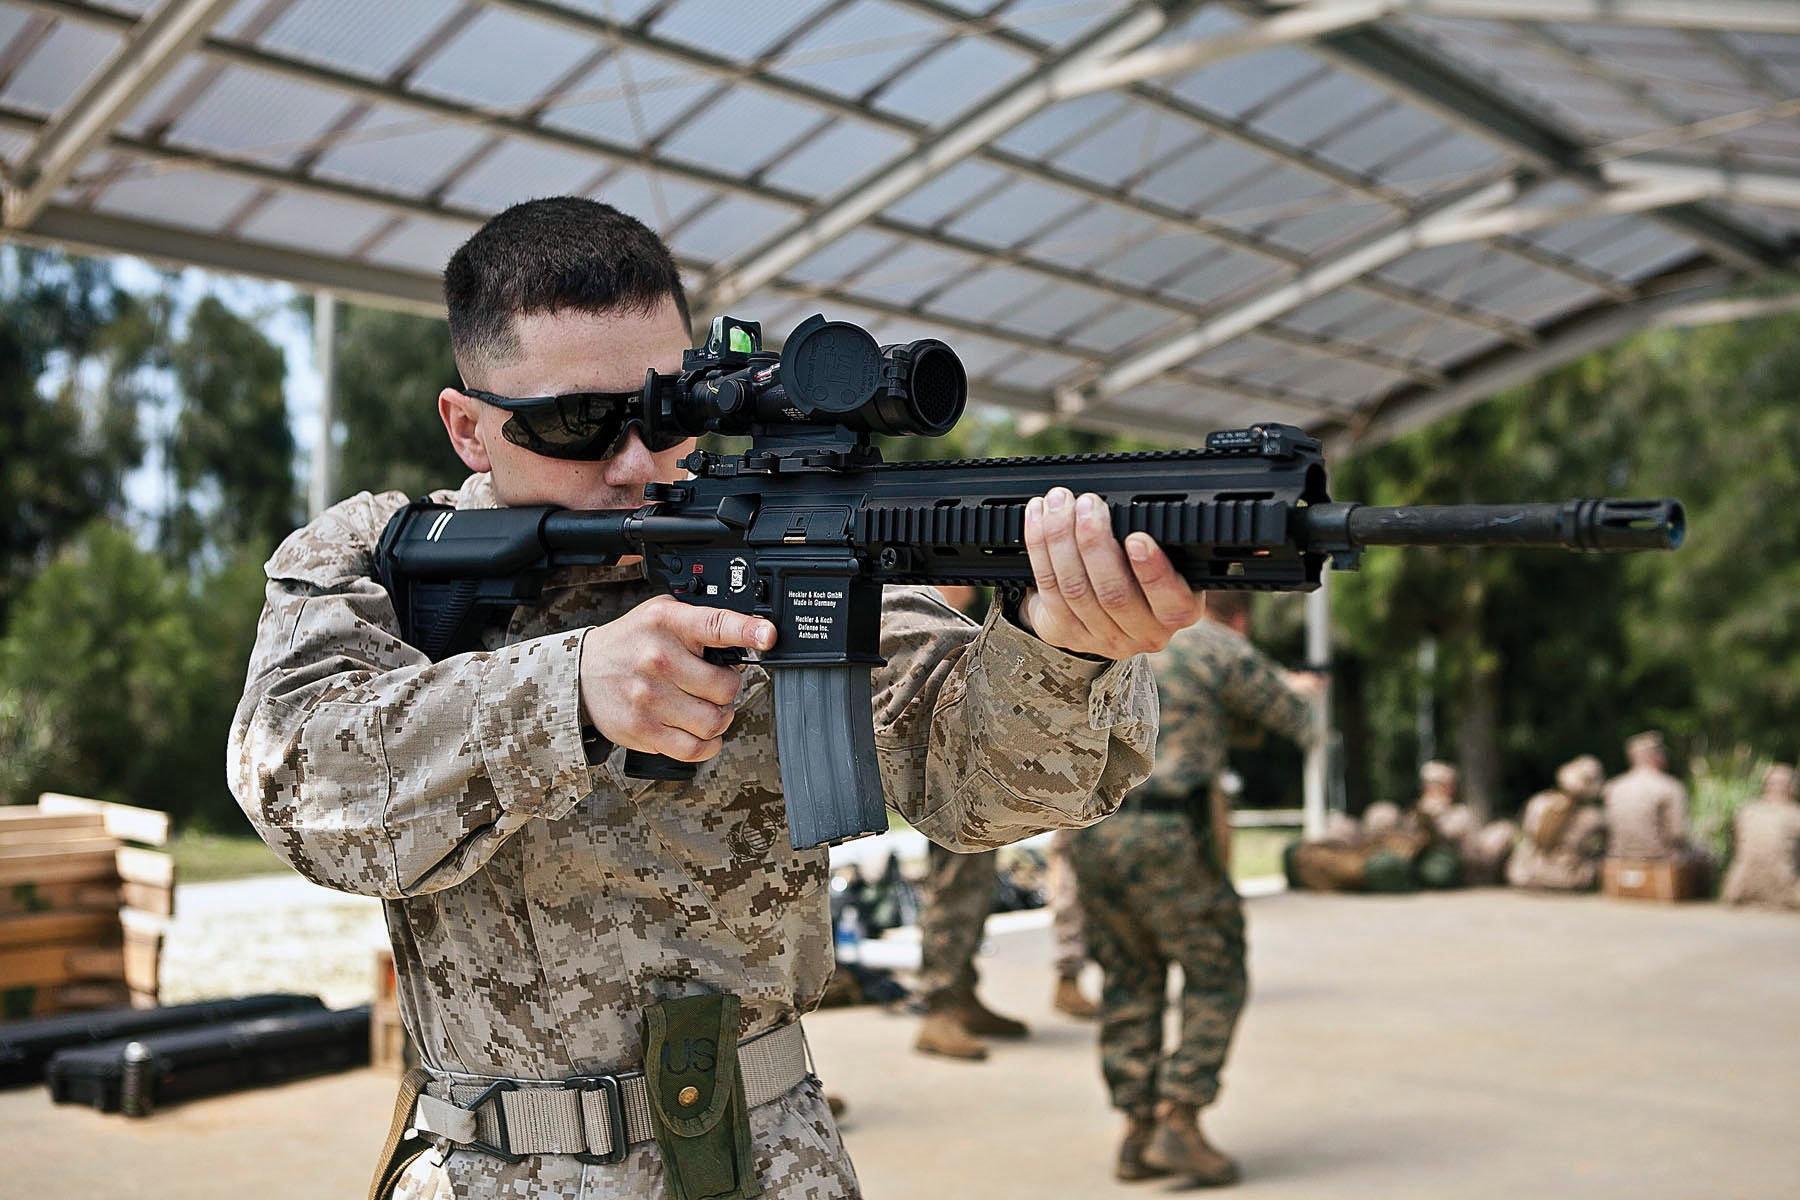 The Heckler & Koch M27 Is the Marines New Rifle